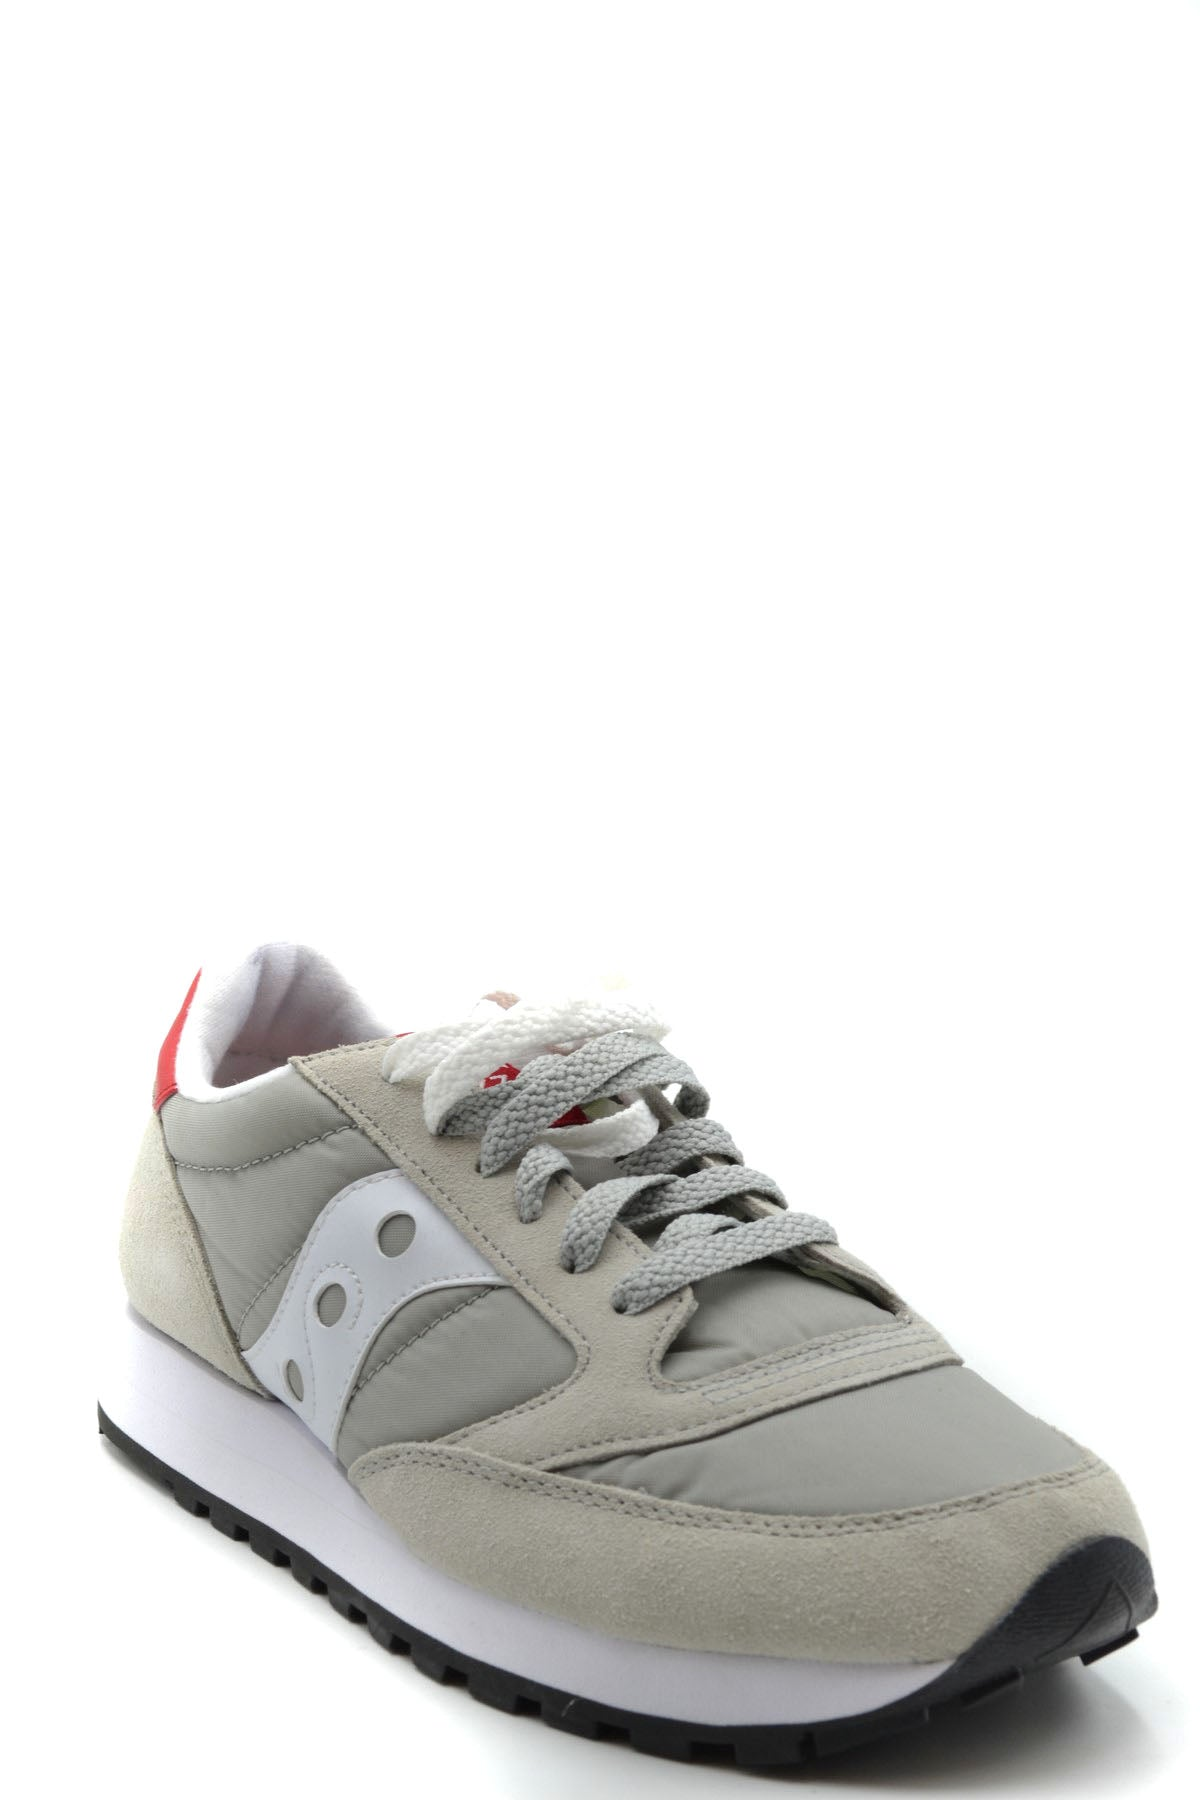 Shoes Saucony-Sports & Entertainment - Sneakers-Product Details Manufacturer Part Number: Jazz OriginalYear: 2019Composition: Nylon 100%Size: EuGender: WomanMade In: VietnamSeason: Spring / SummerType Of Accessory: ShoesMain Color: GrayTerms: New With Label-Keyomi-Sook